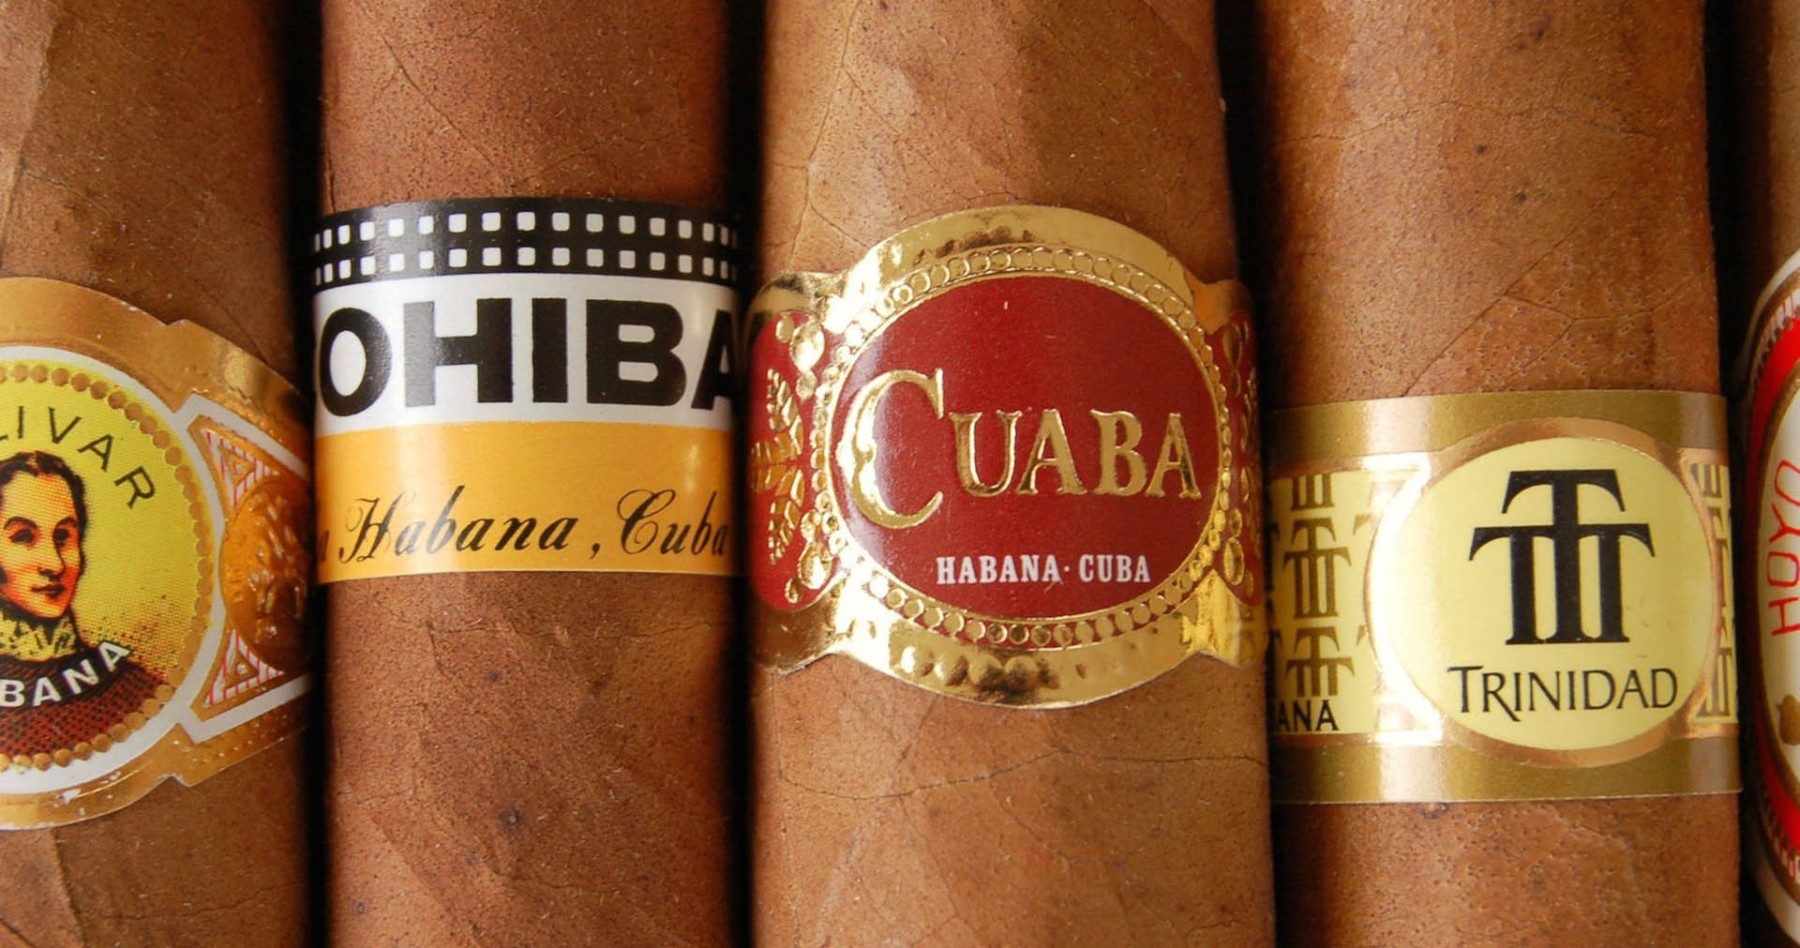 When Will I Be Able to Smoke a Cuban?